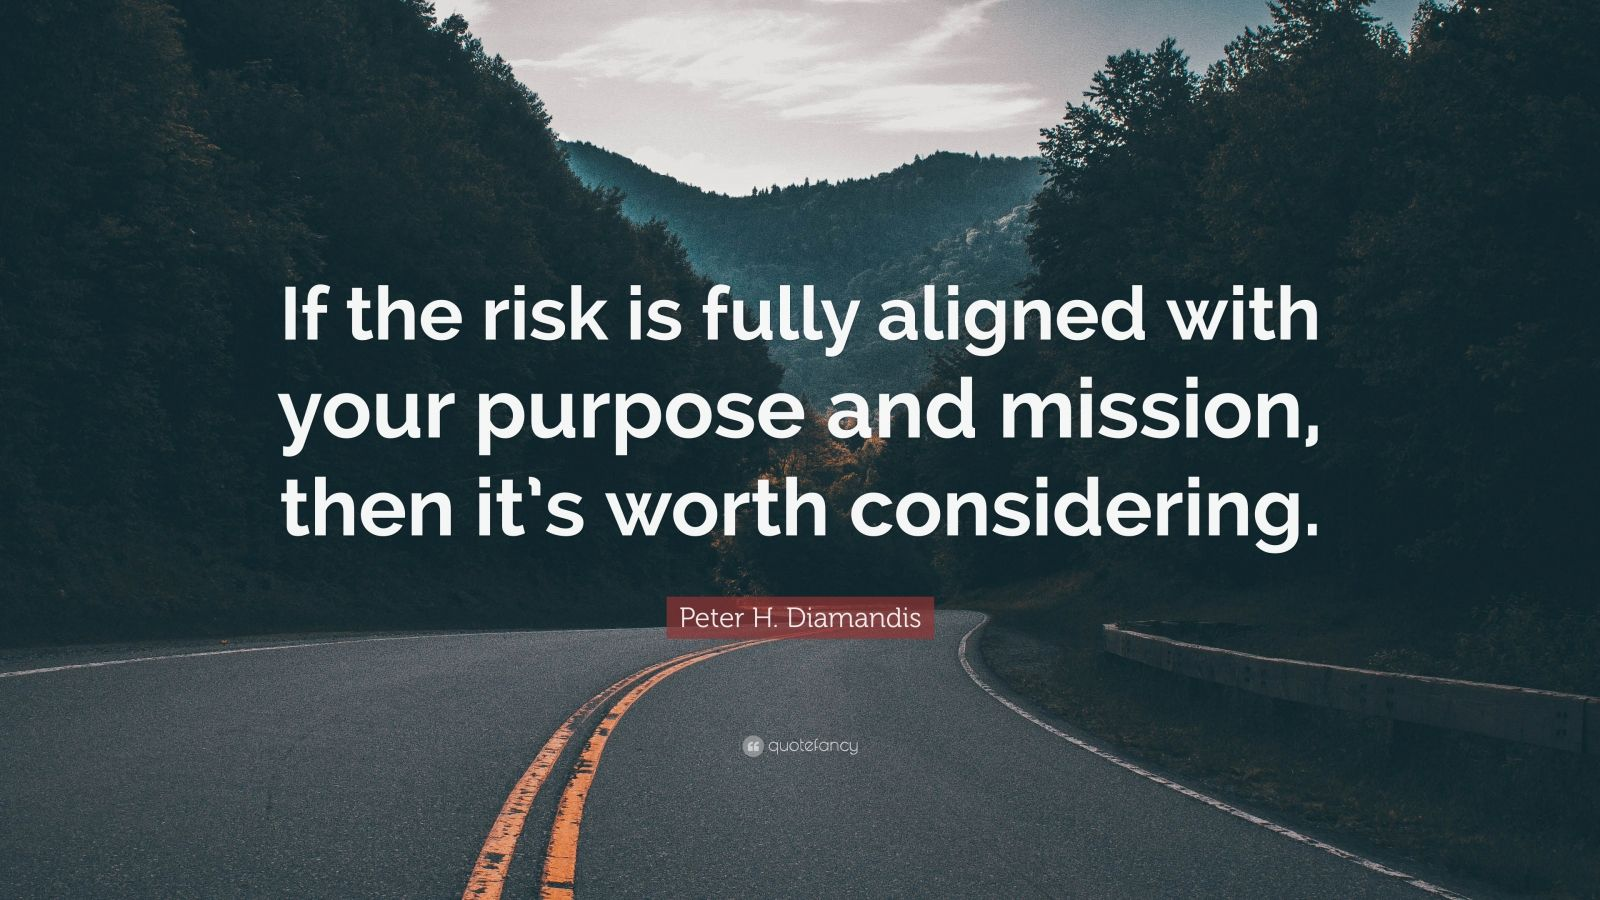 """Peter H. Diamandis Quote: """"If the risk is fully aligned with your purpose and mission, then it's worth considering."""""""